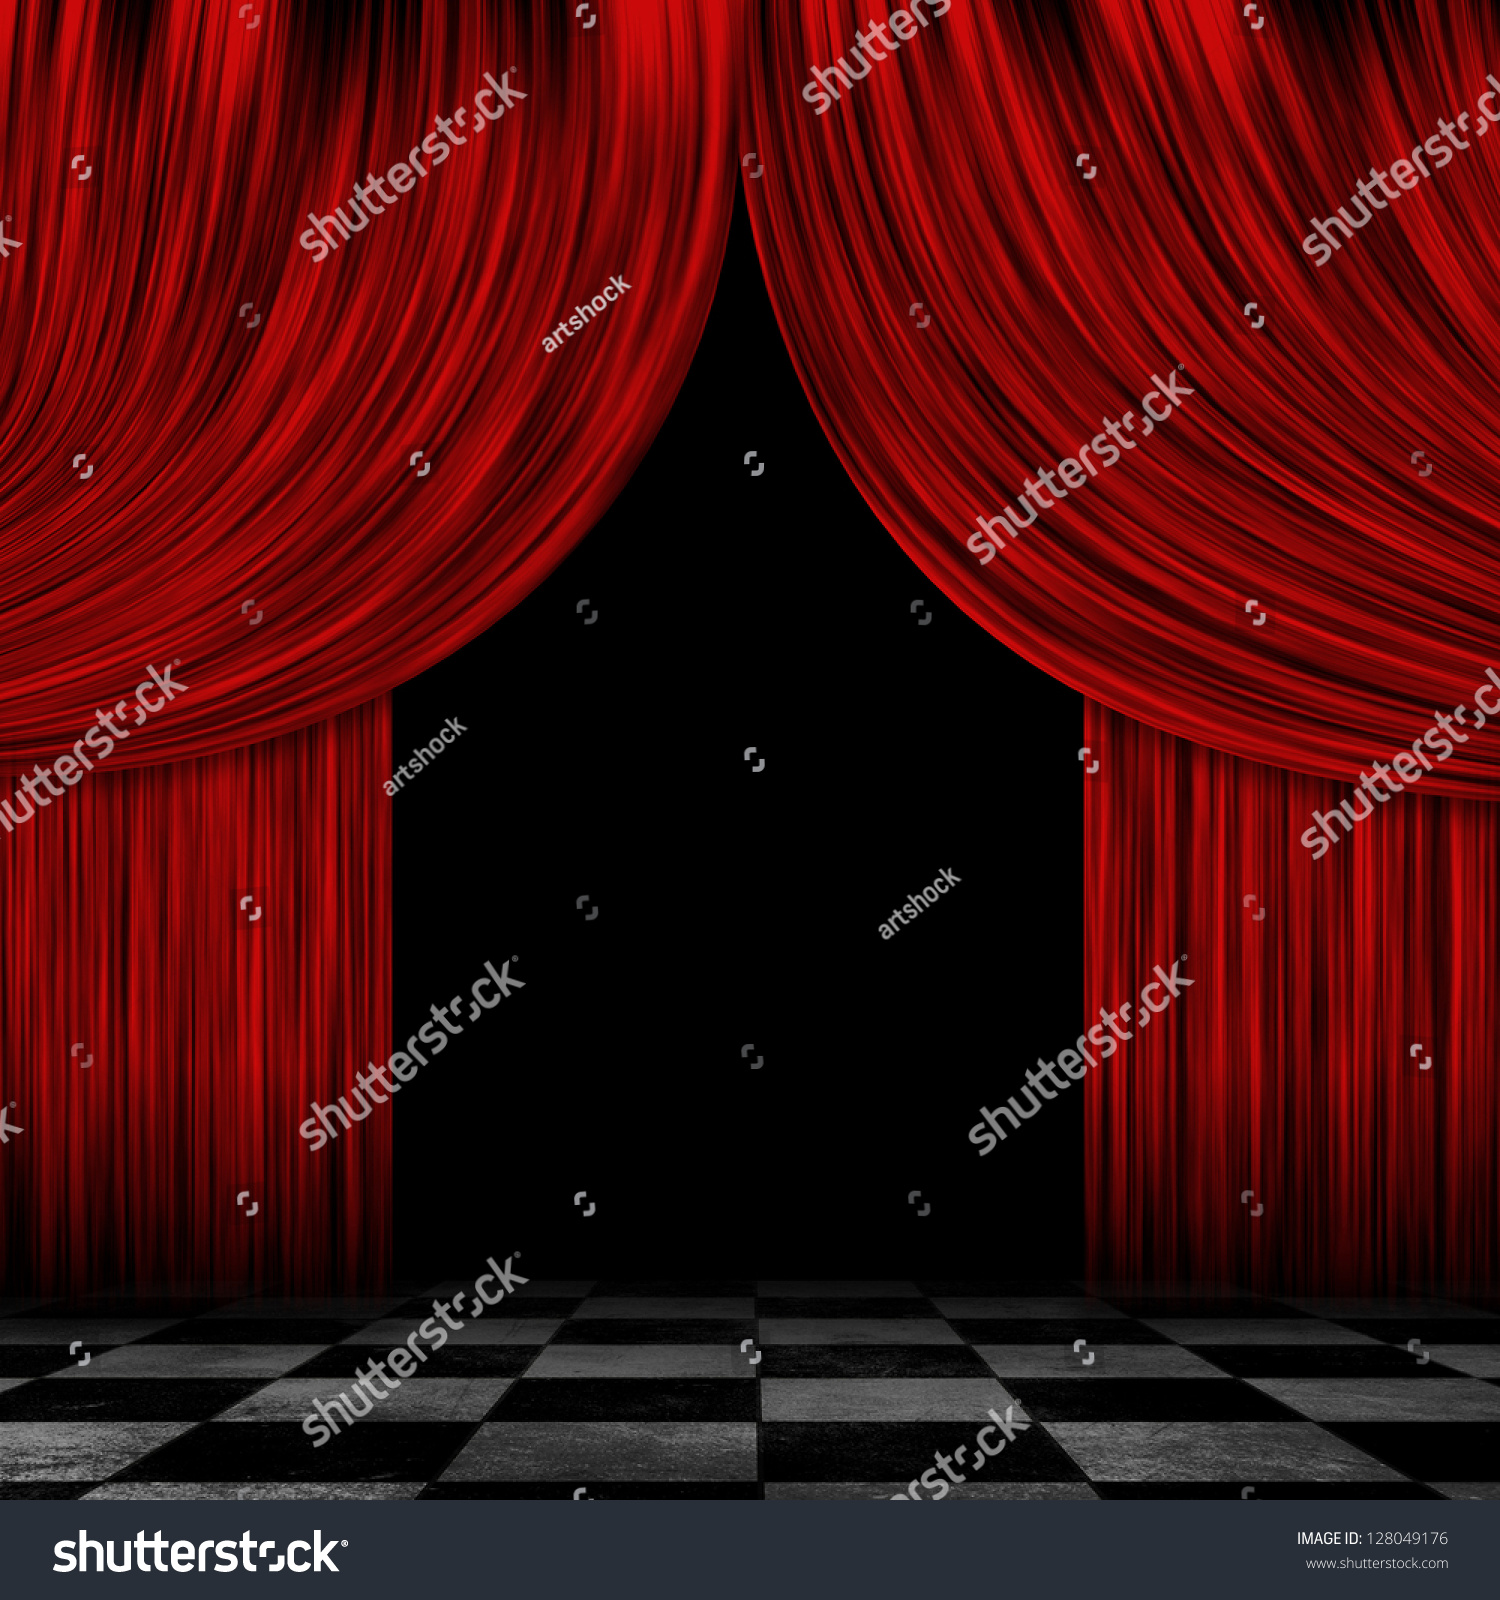 Red stage curtains open - Illustration Of Open Theater Drapes Or Stage Curtains With A Black Background